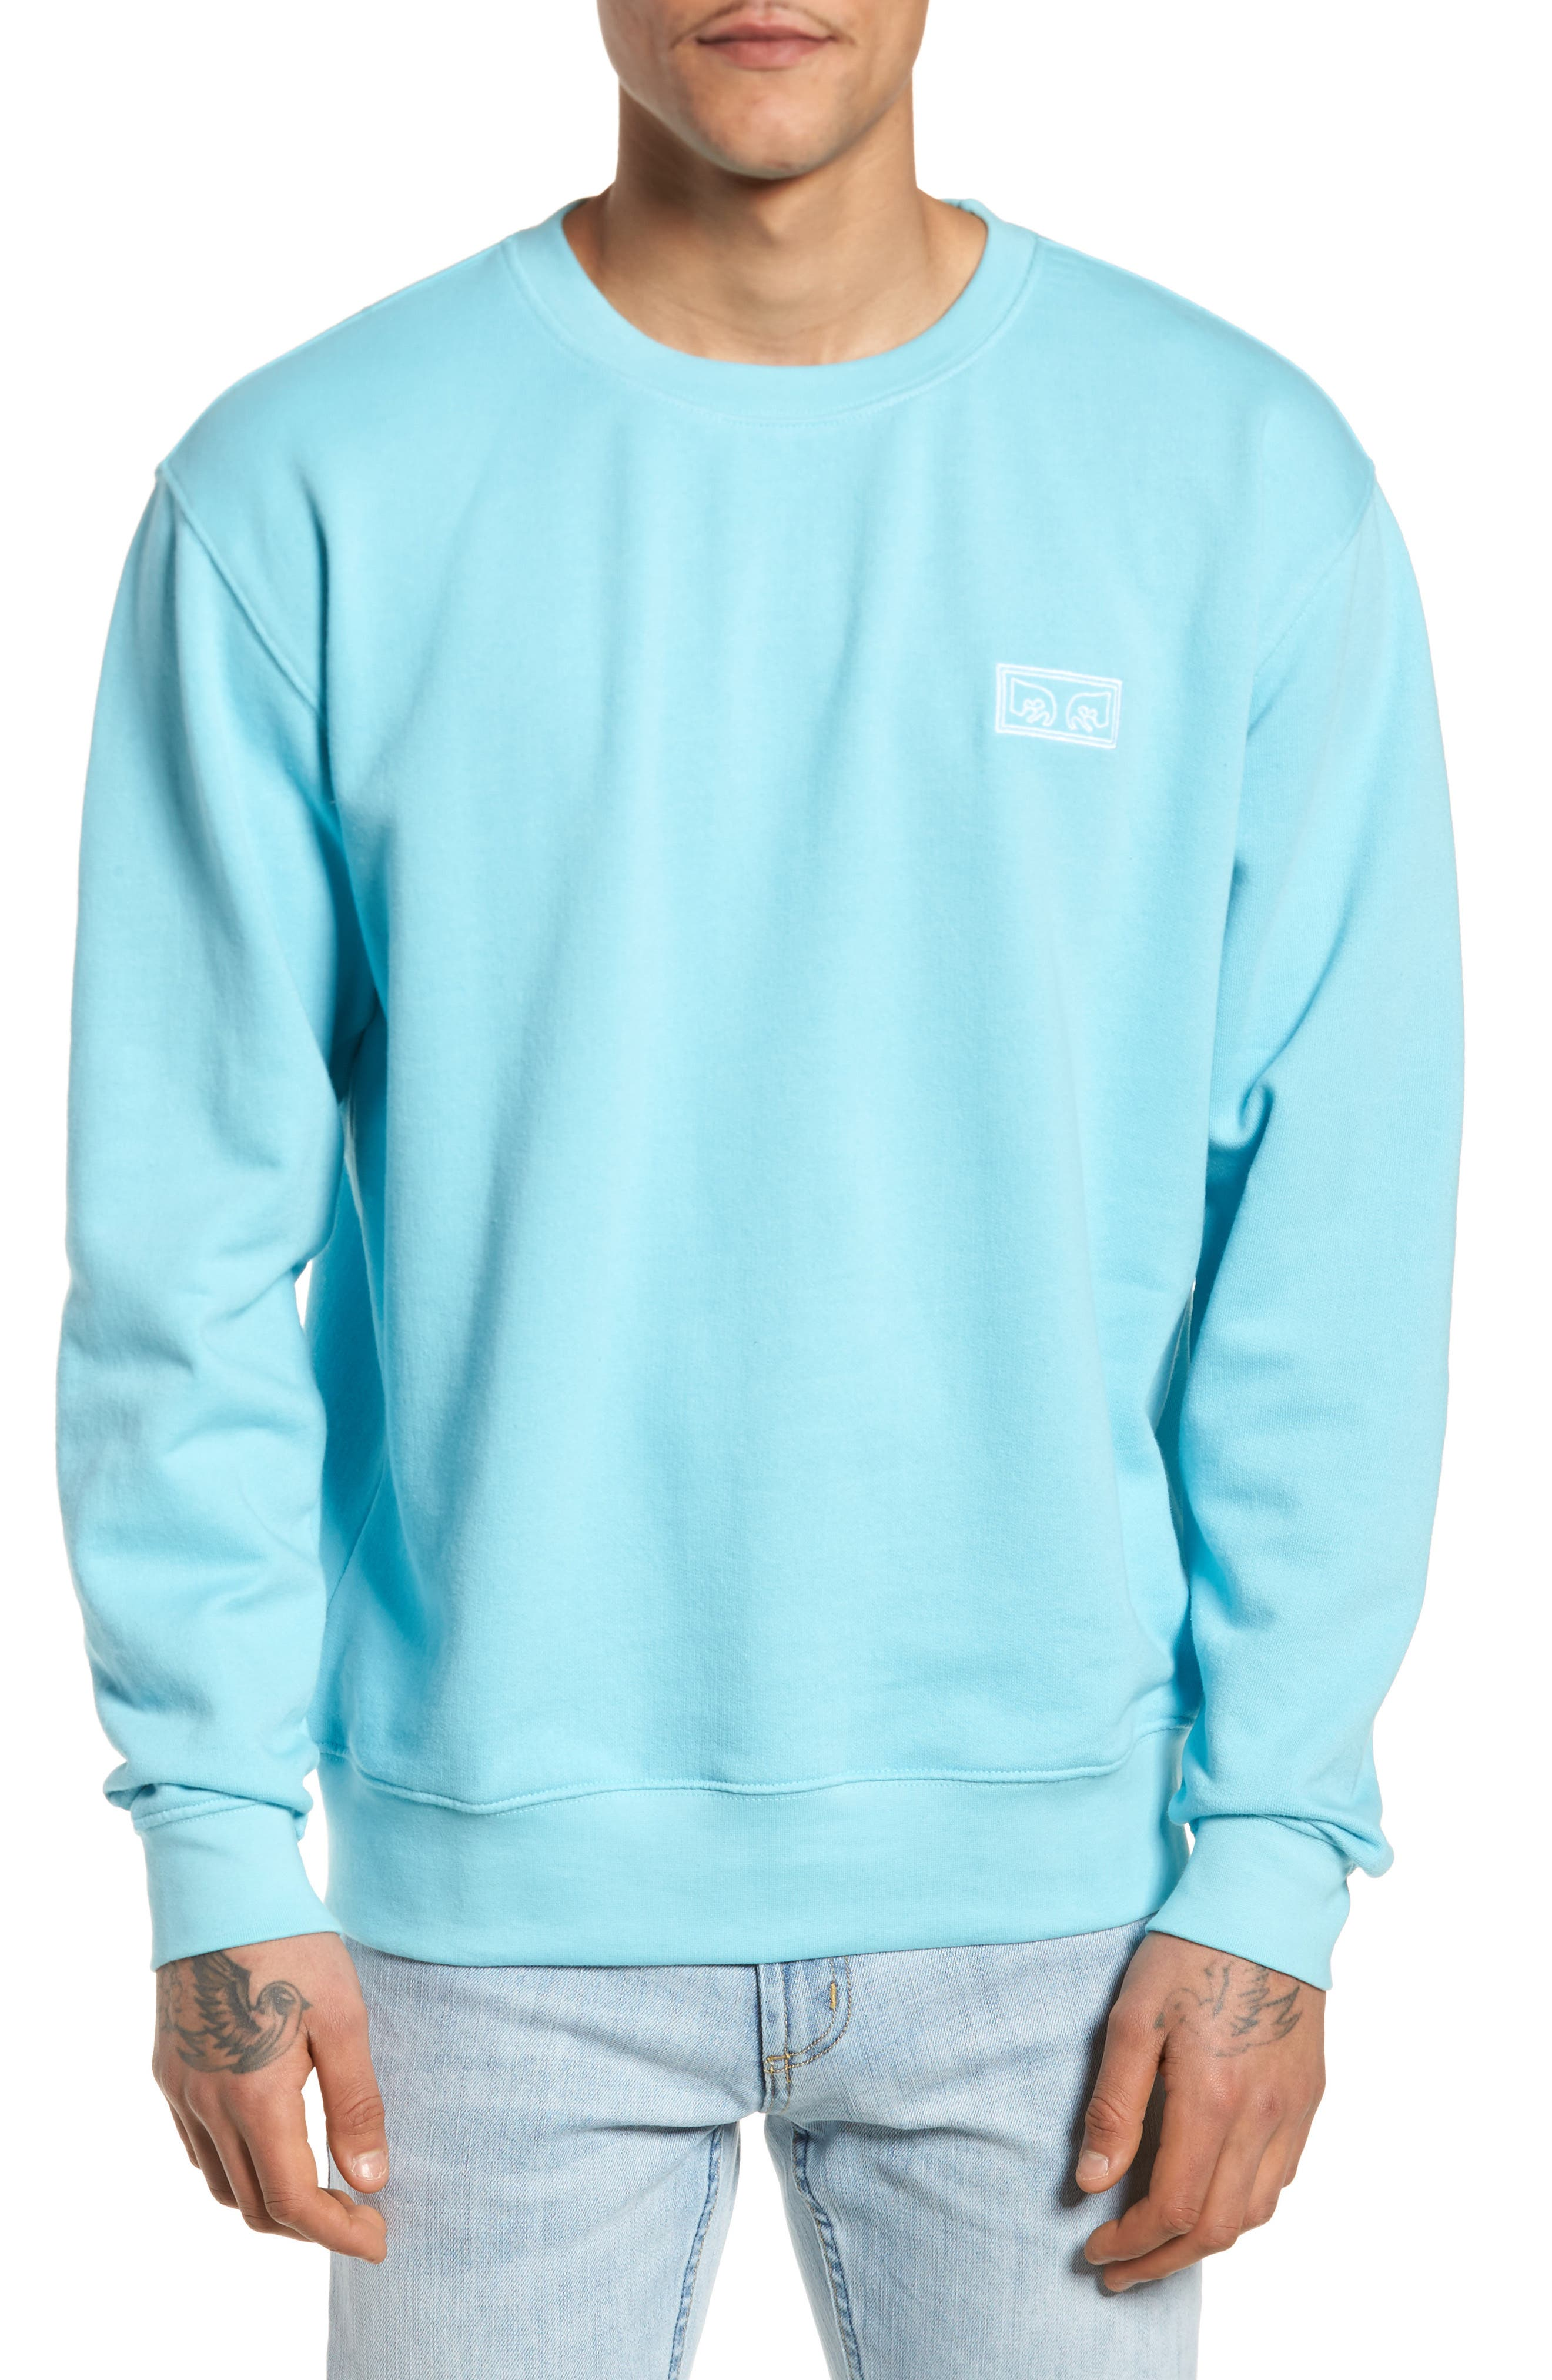 These Eyes Sweatshirt,                         Main,                         color, Cool Blue